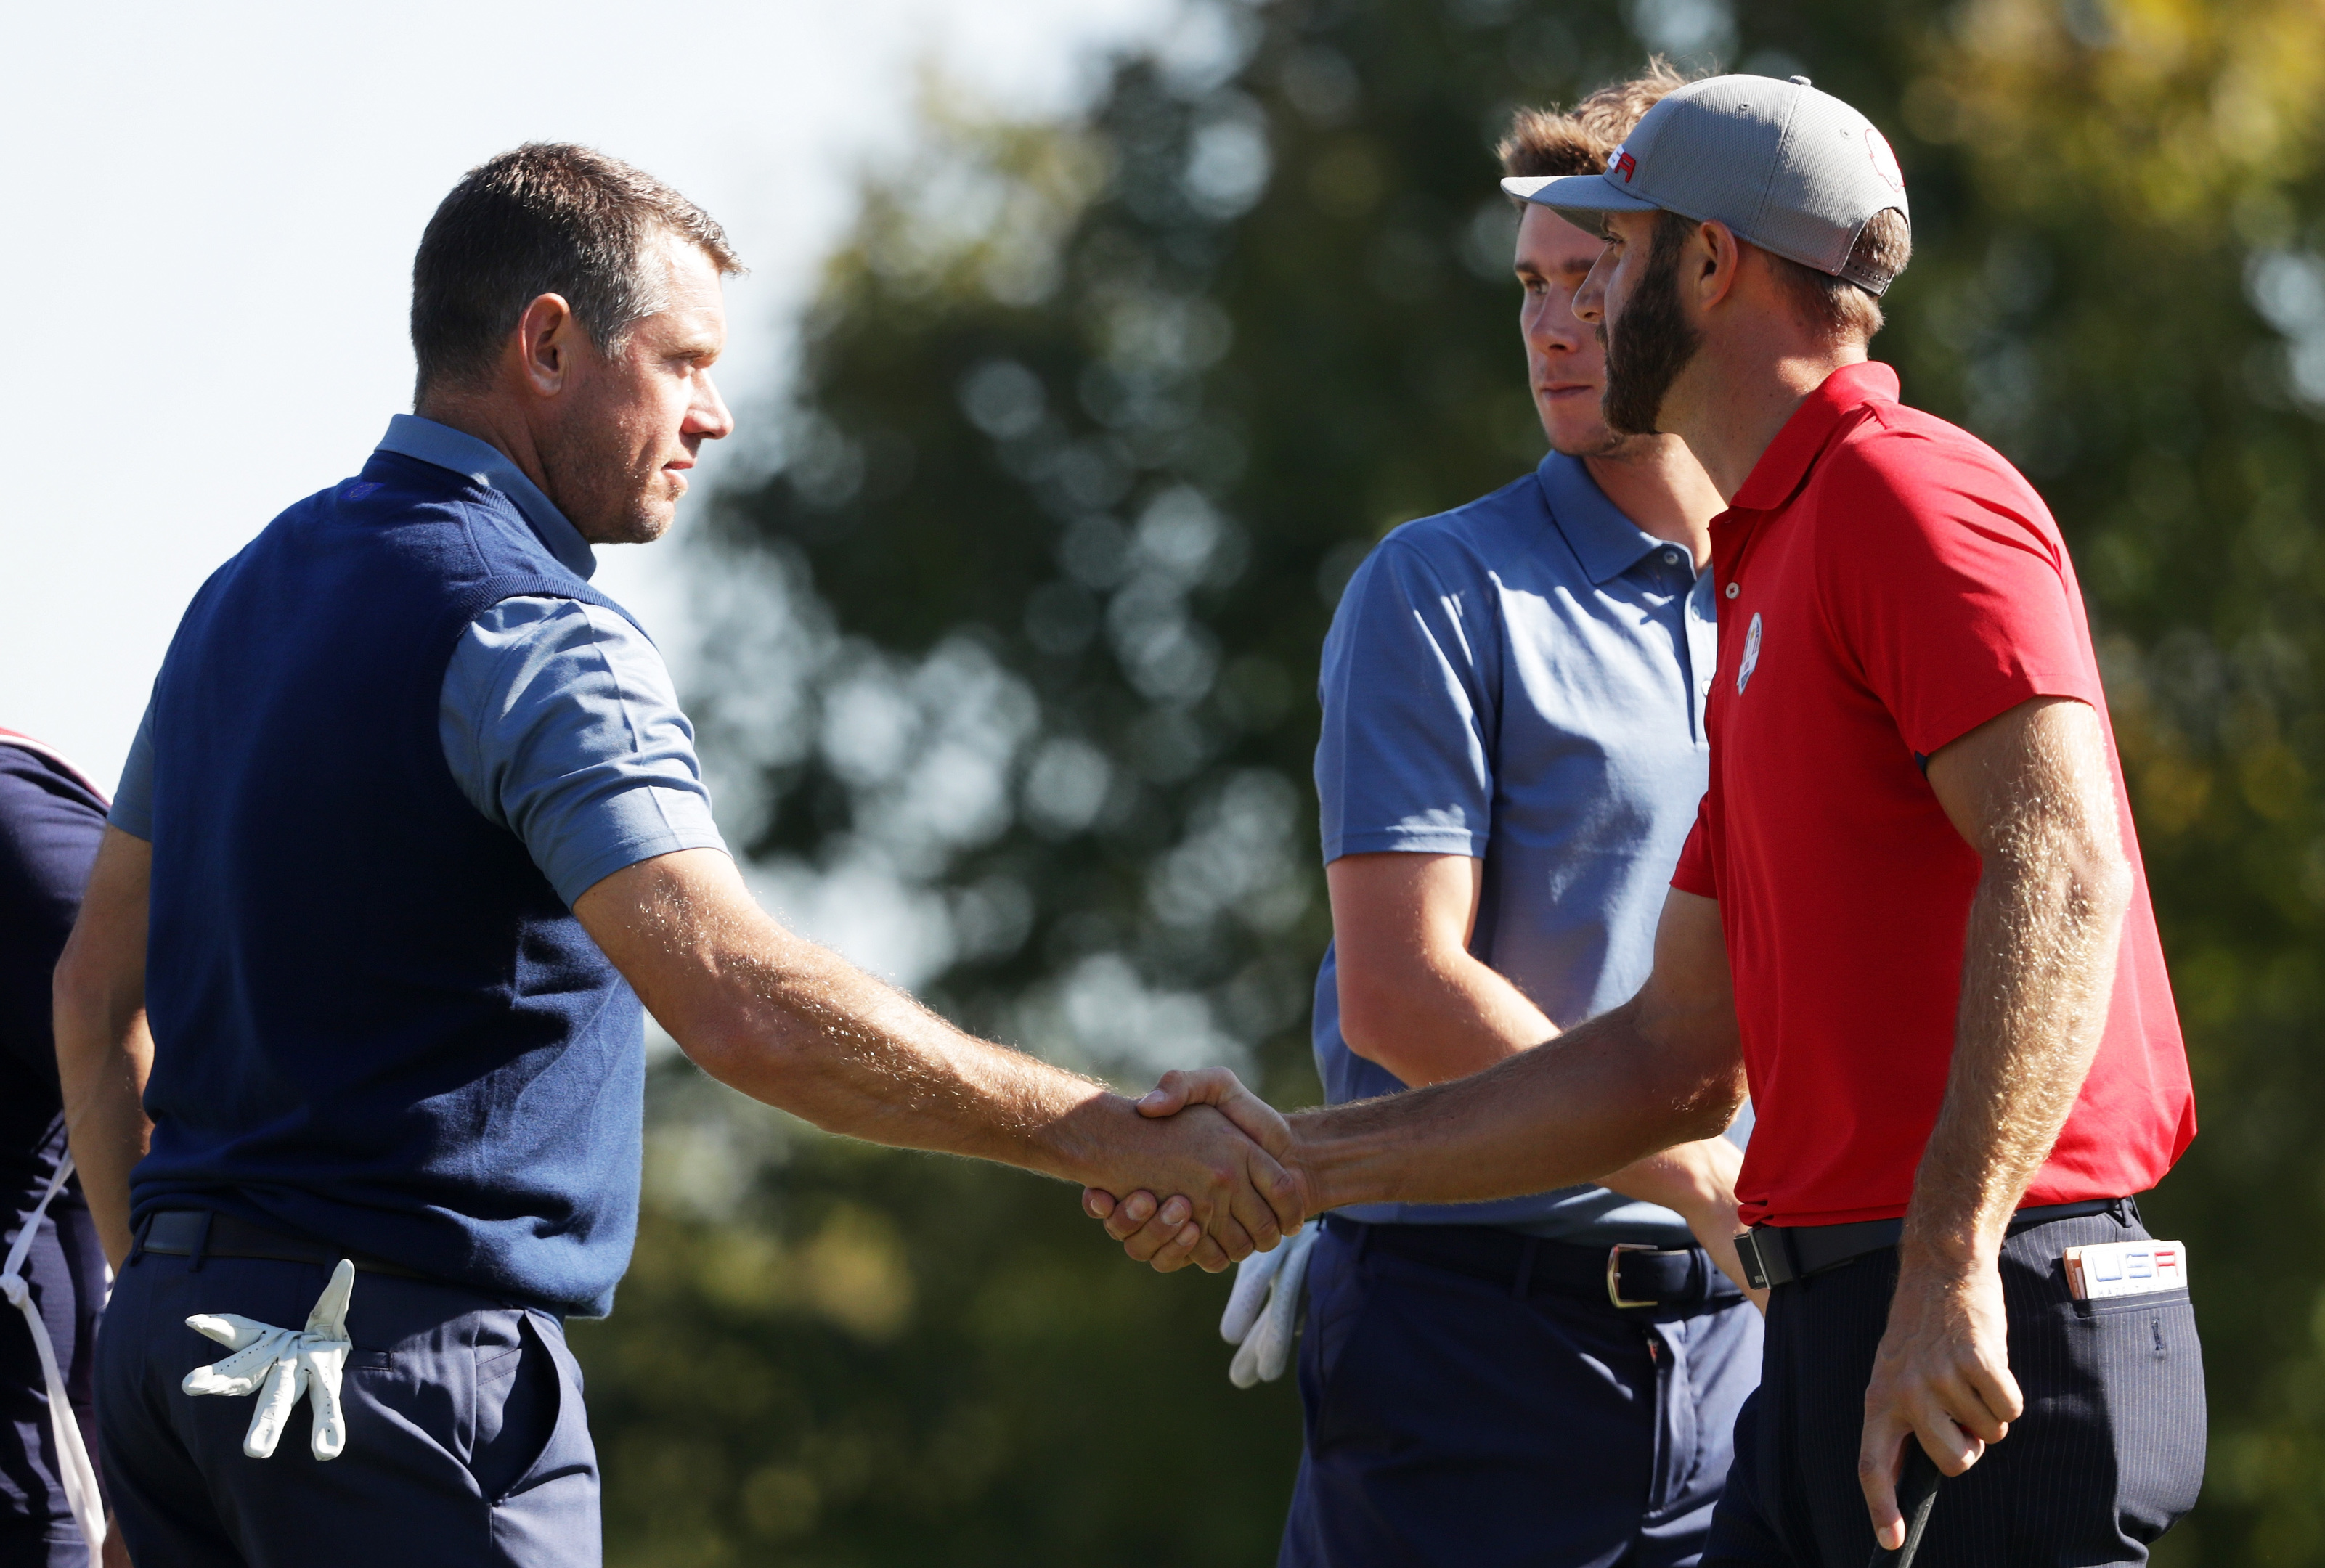 Lee Westwood congratulates Dustin Johnson at the end of their foursomes match at Hazeltine.